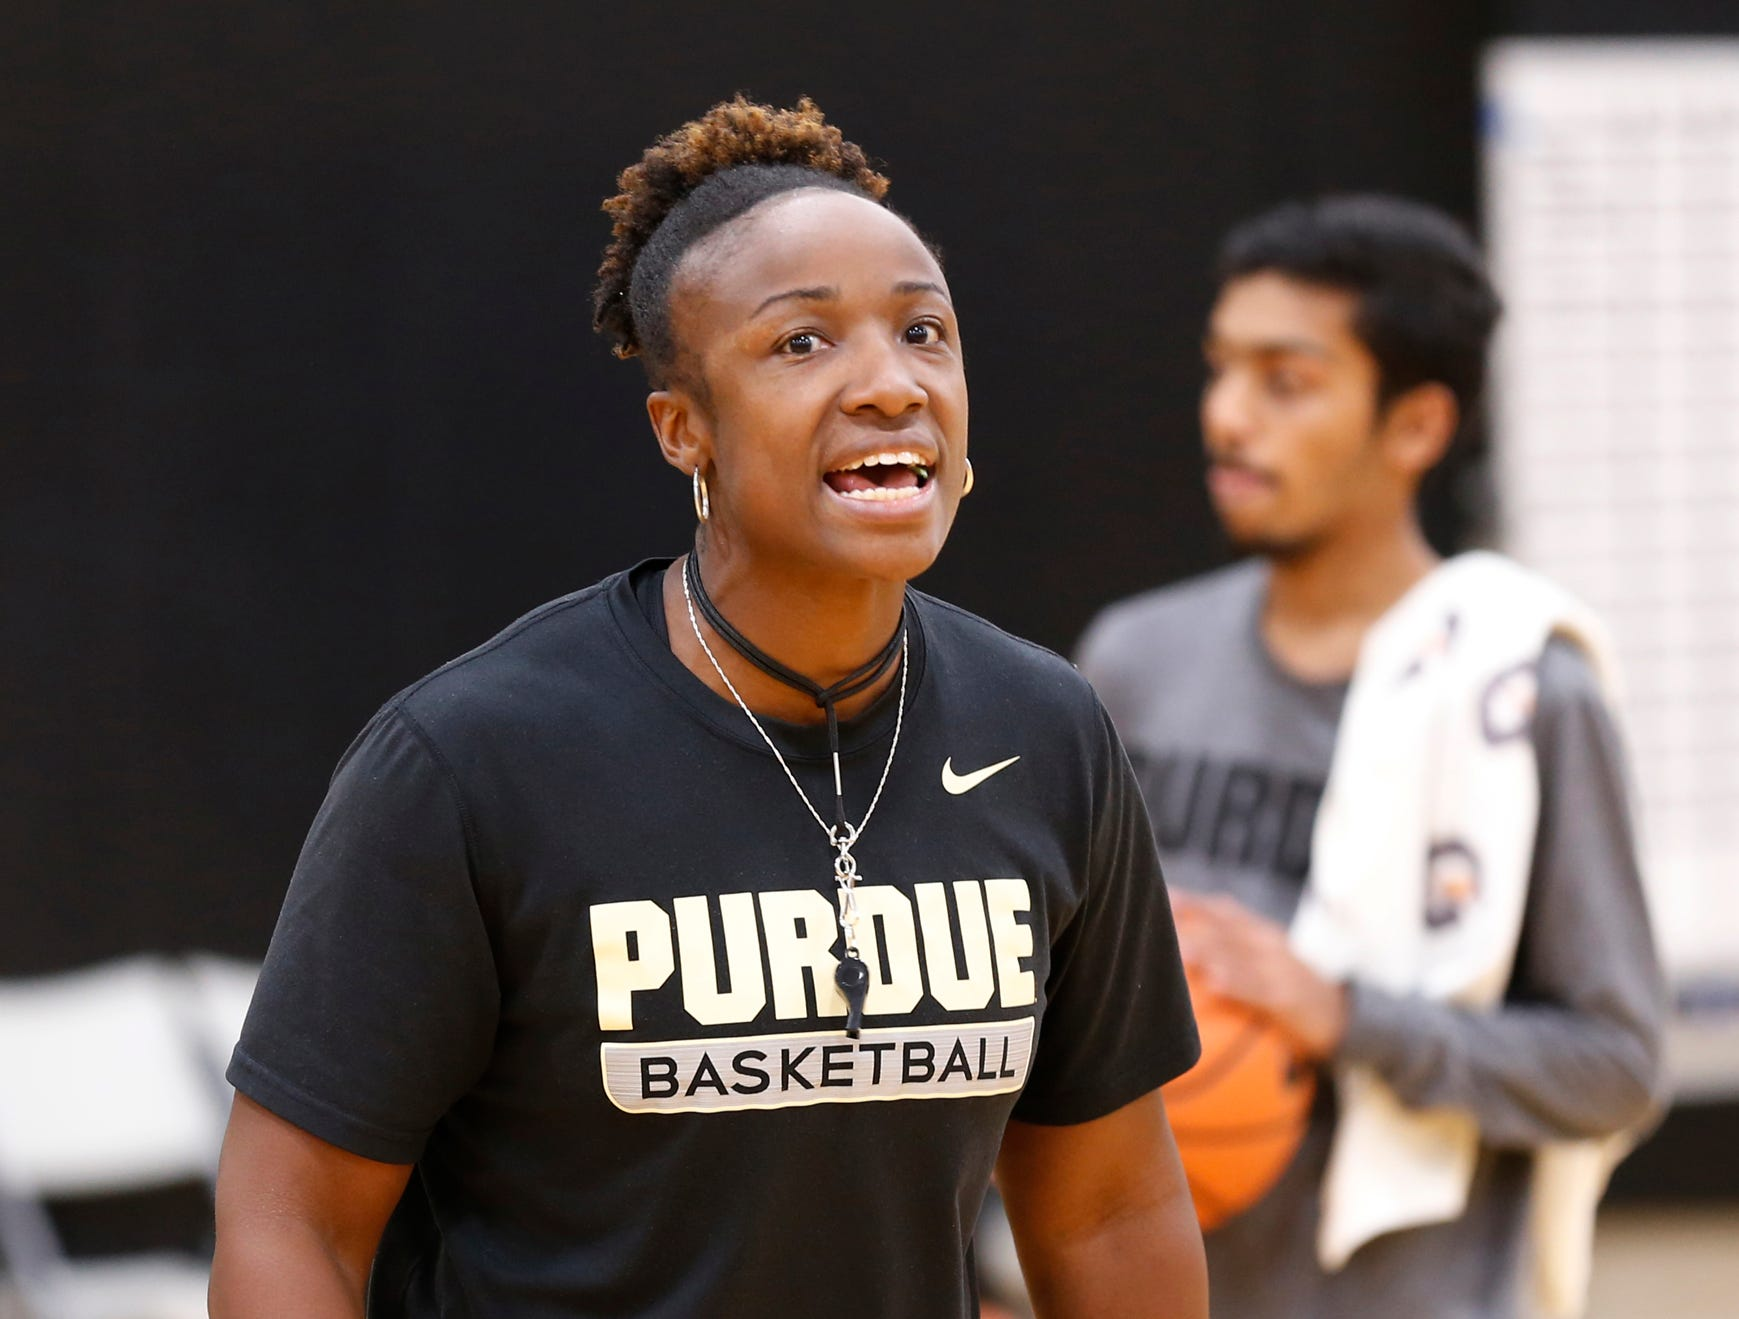 Assistant head coach Nadine Morgan shouts as players run a drill during Purdue women's basketball practice Wednesday, September 26, 2018, at Cardinal Court in Mackey Arena.